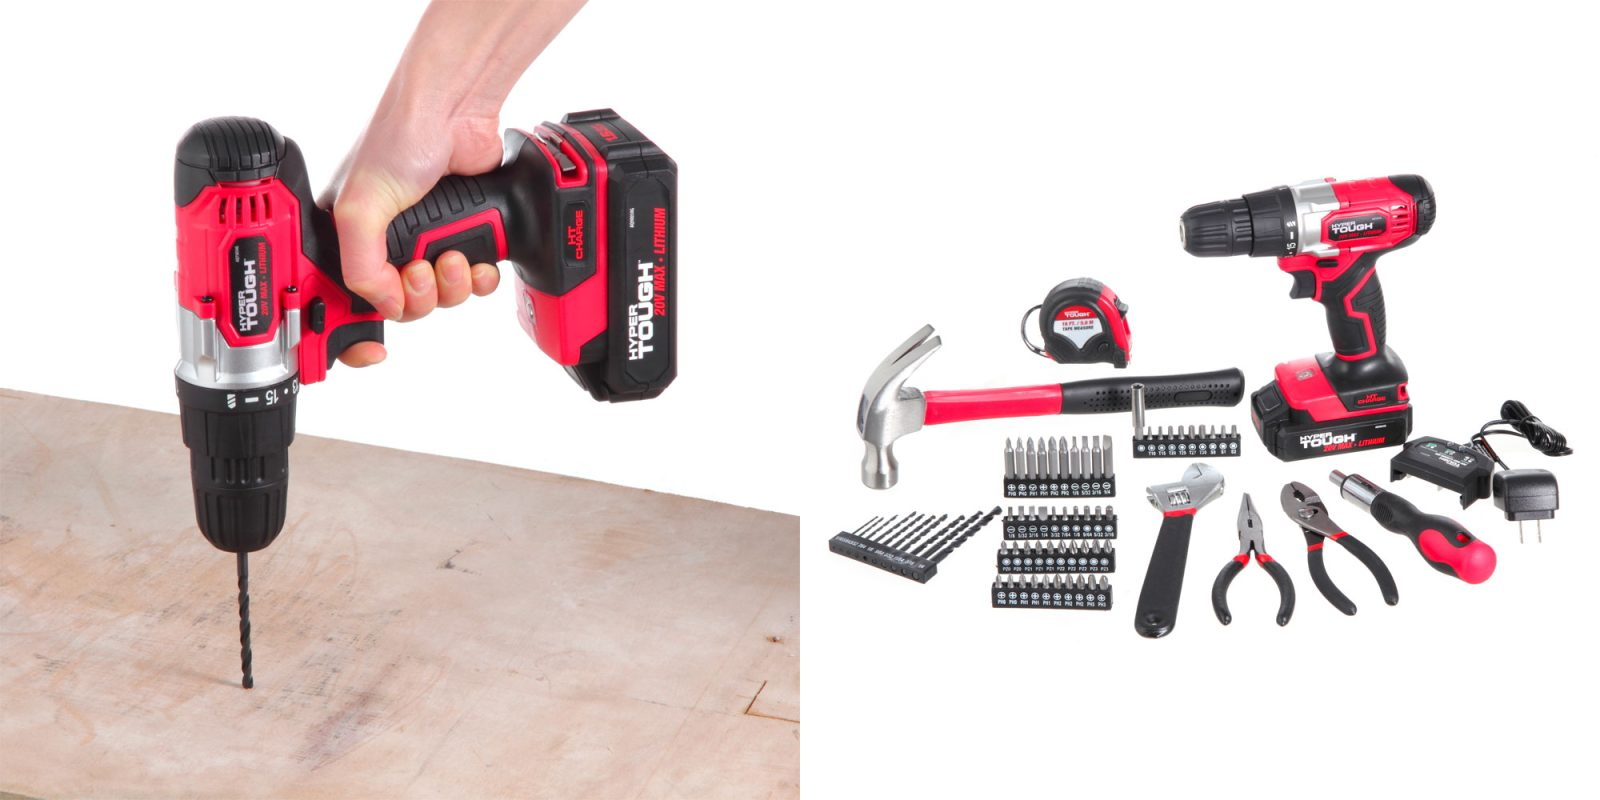 This 70-piece project kit packs a 20V drill/driver and more for $35.50